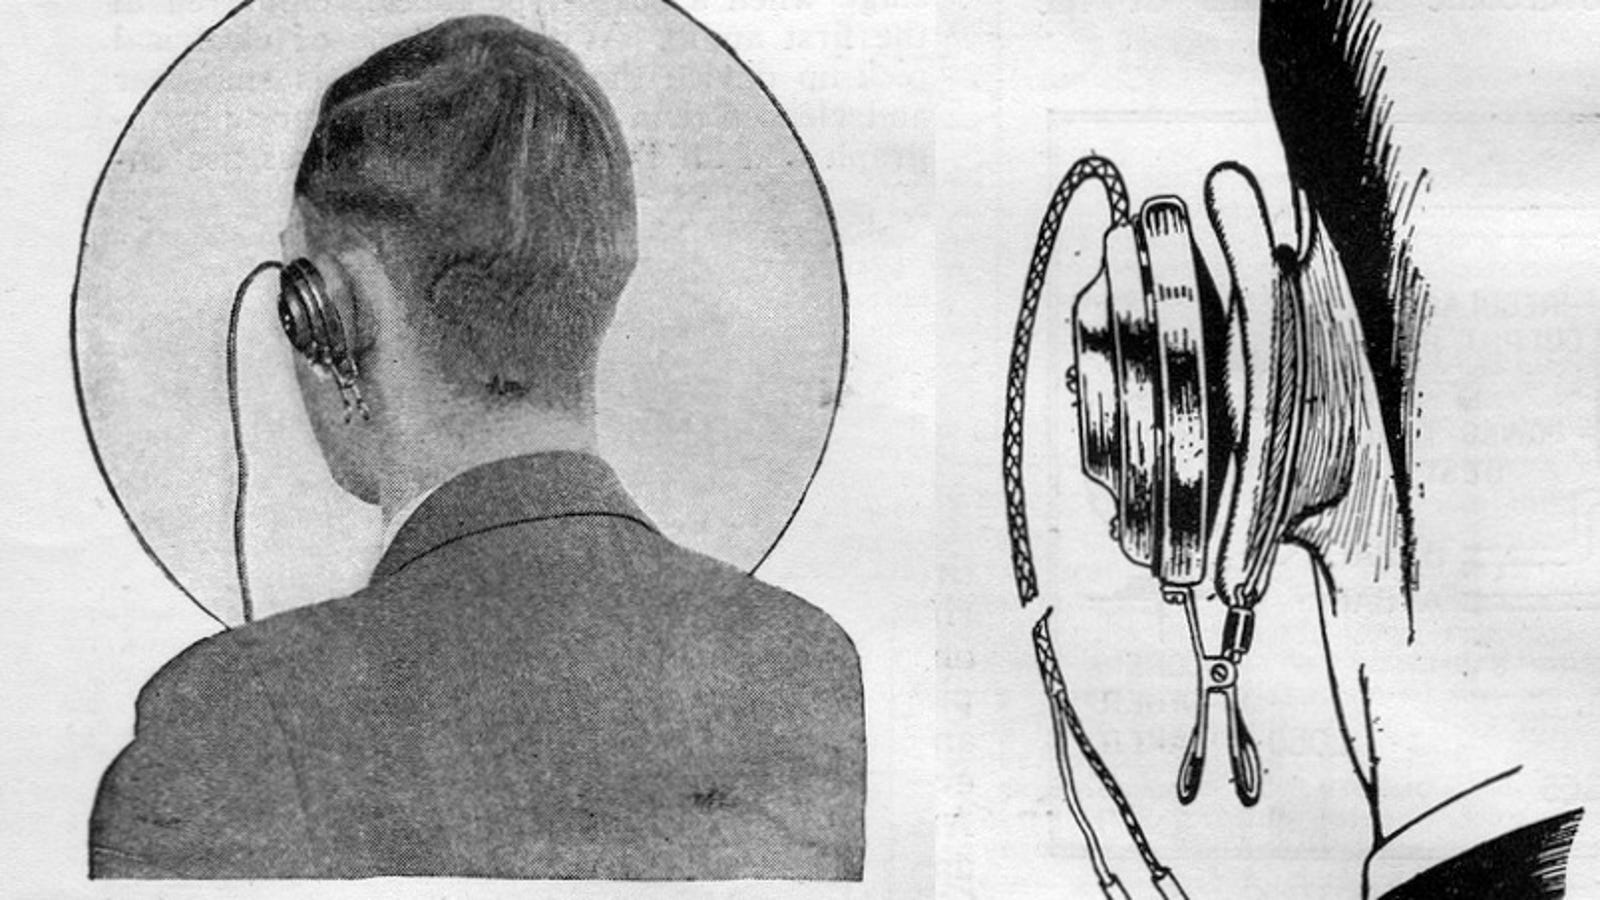 bluetooth headphones wireless sony - These Headphones From 1927 Look So Much Worse Than Earbuds